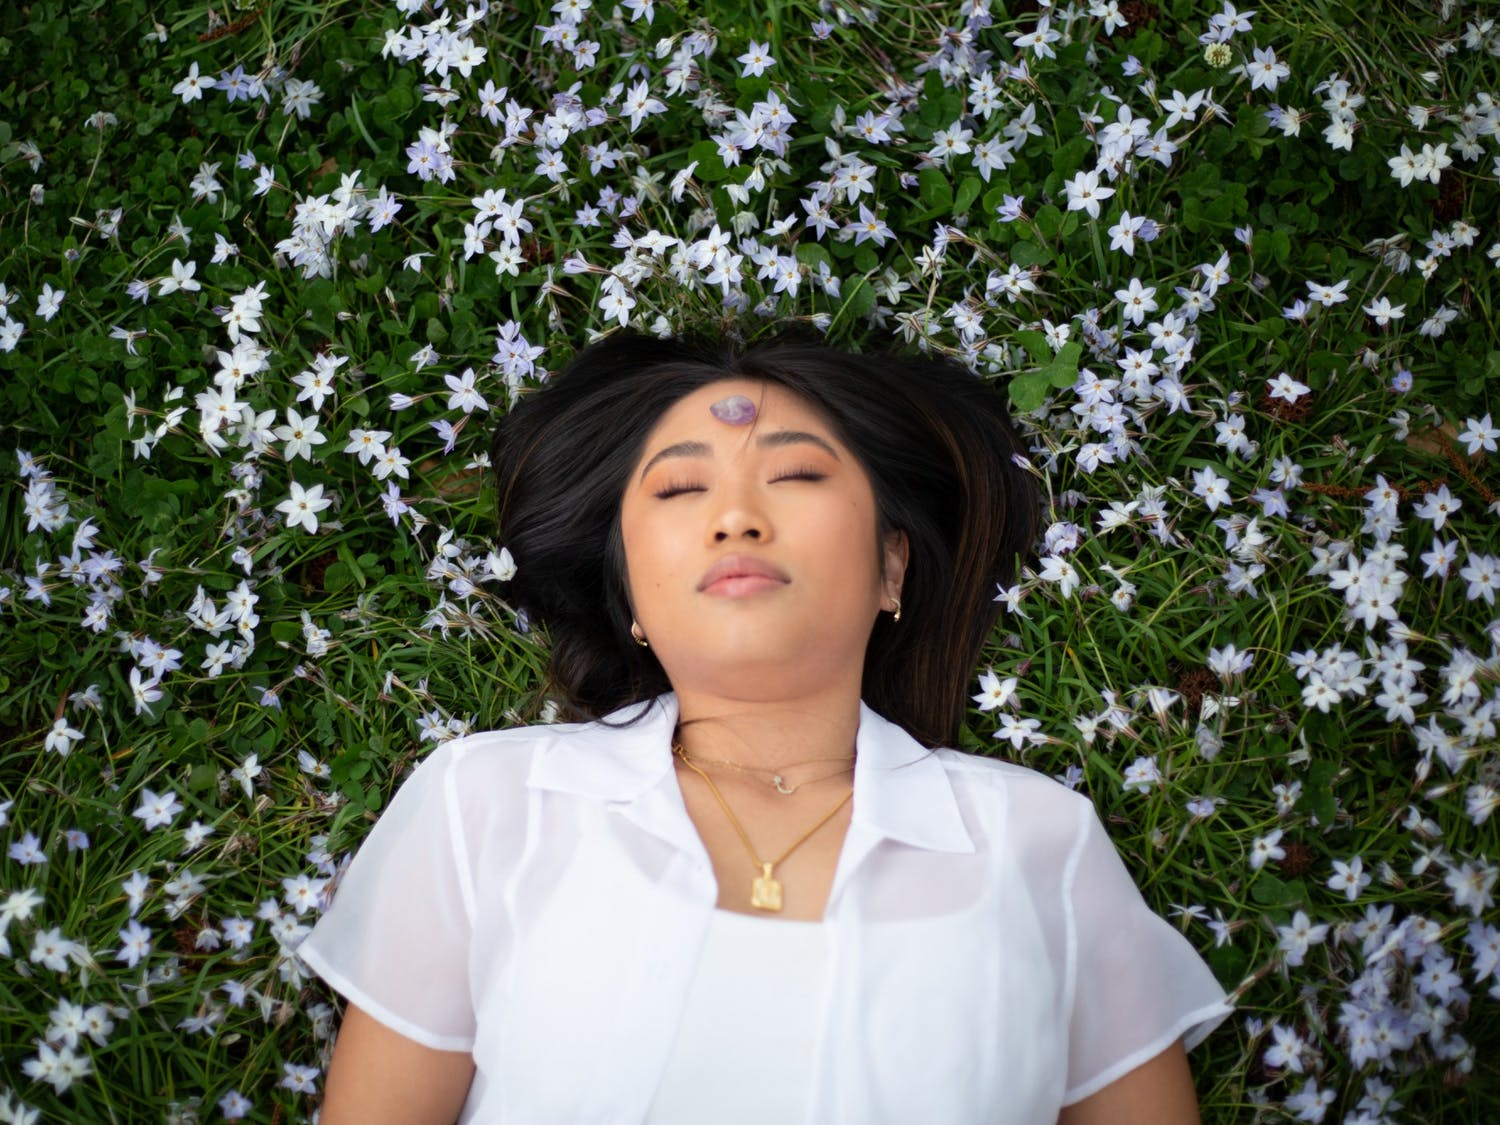 Junior Advertising and Public Relations major Tran Nguyen meditates with her crystals in the Coker Arboretum on Thursday, Apr. 1, 2021.